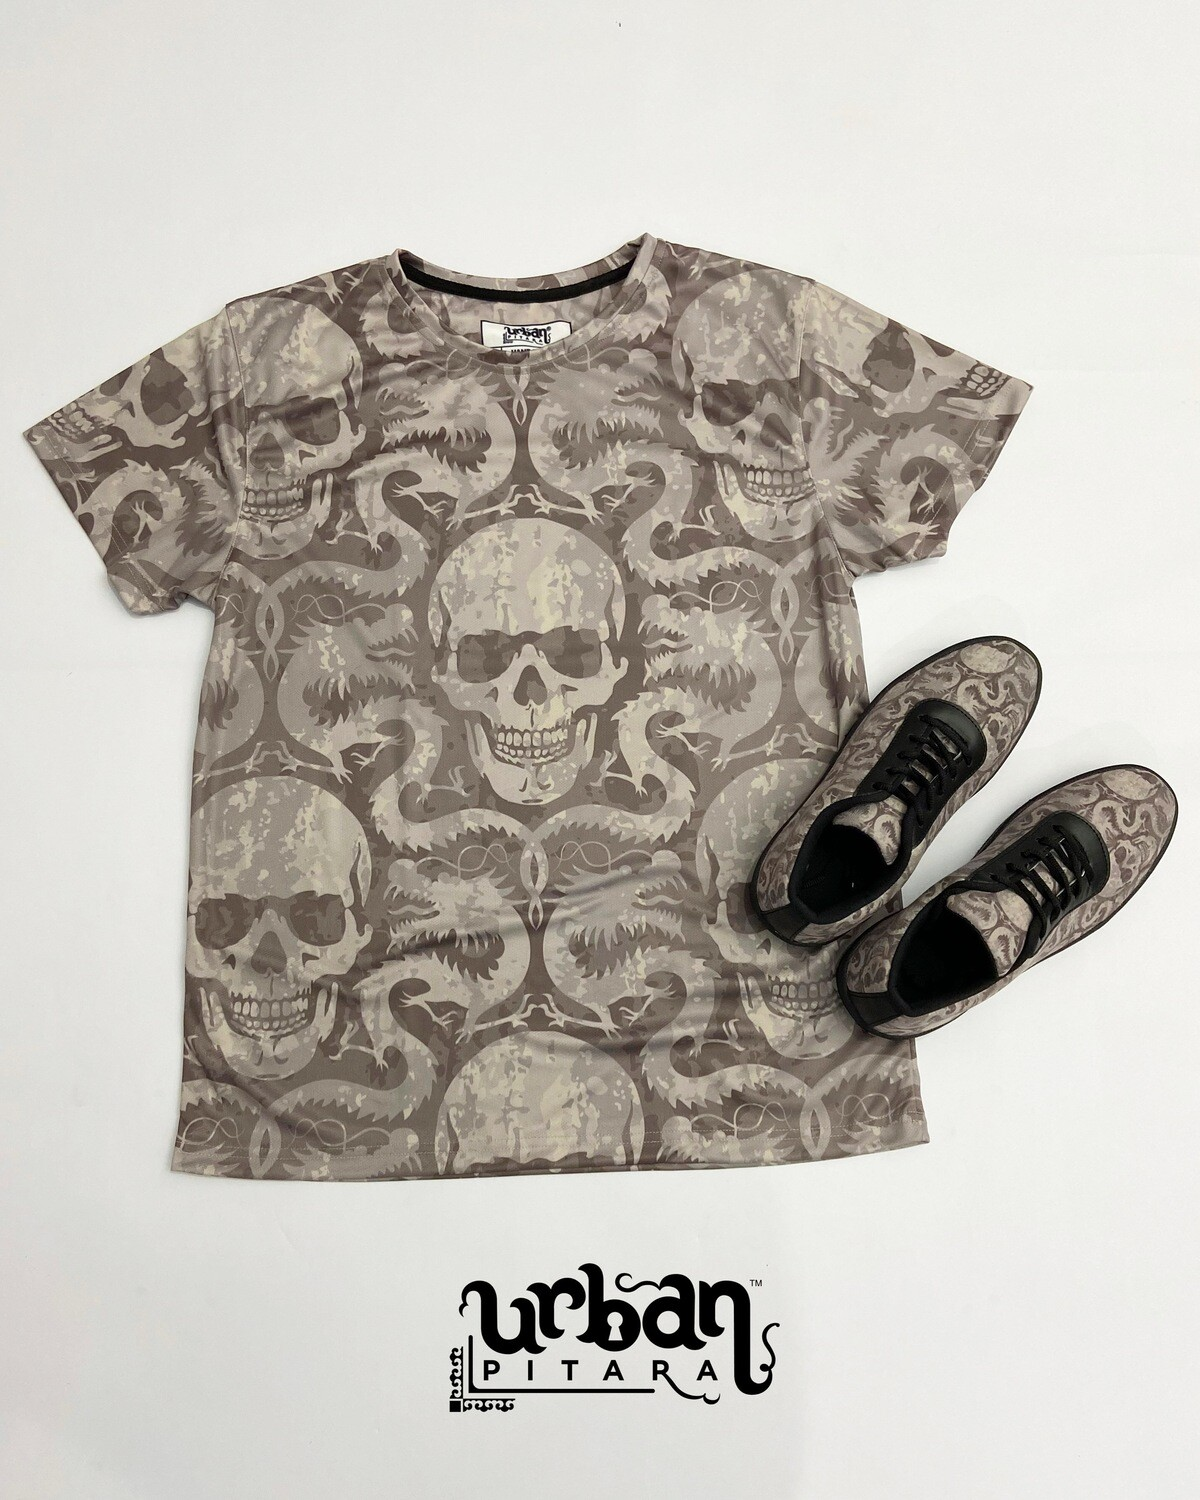 Venom Skull t-shirt and shoes Combo